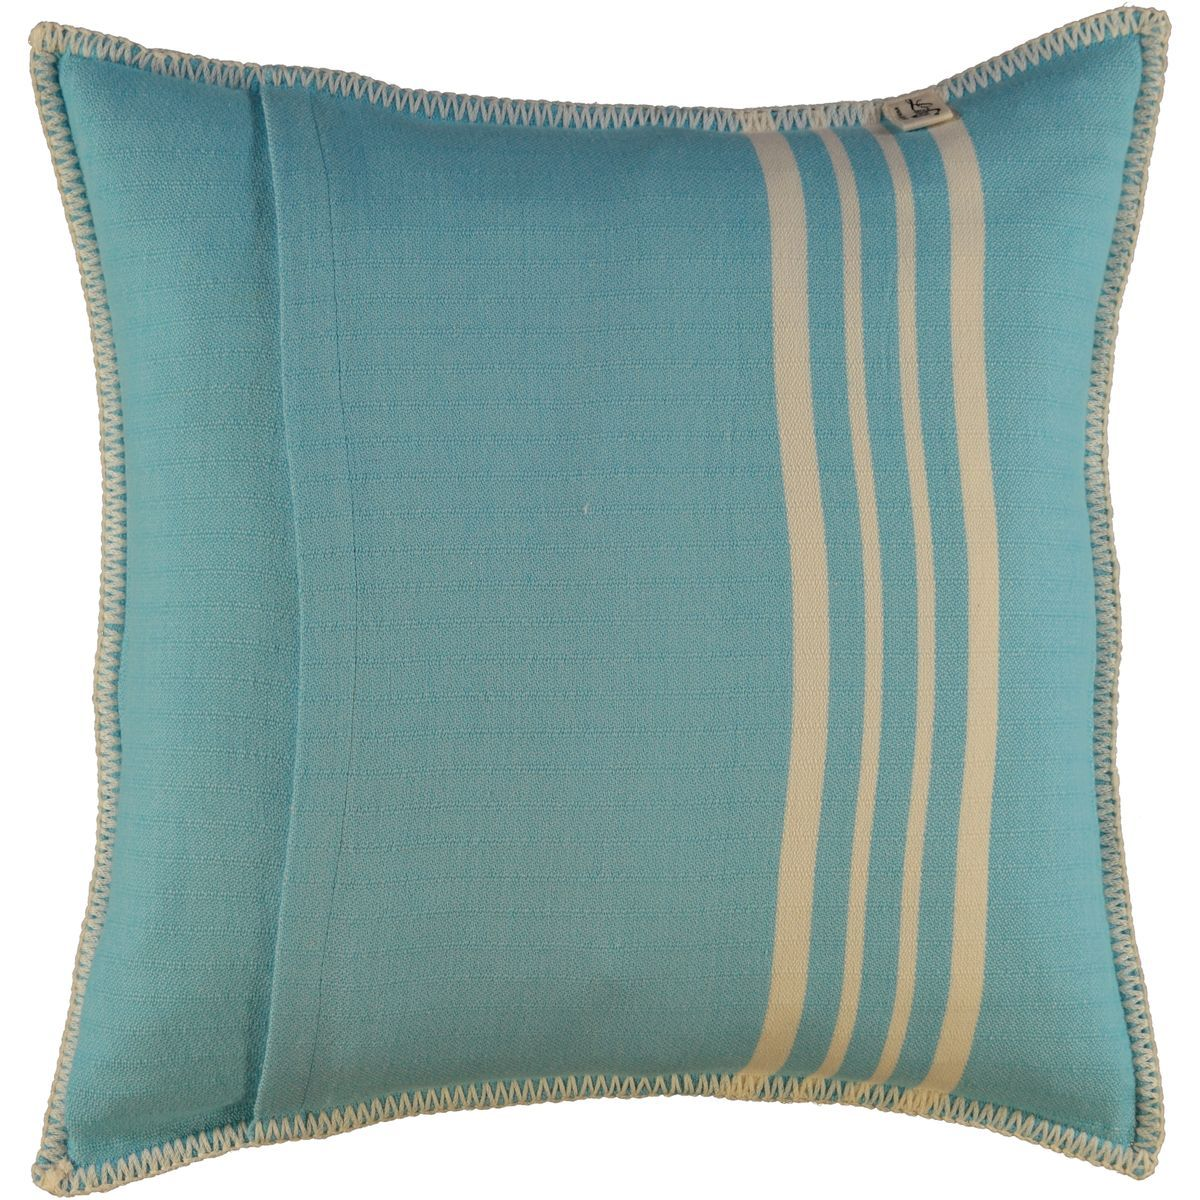 Cushion Cover Sultan - Turquoise / 45x45